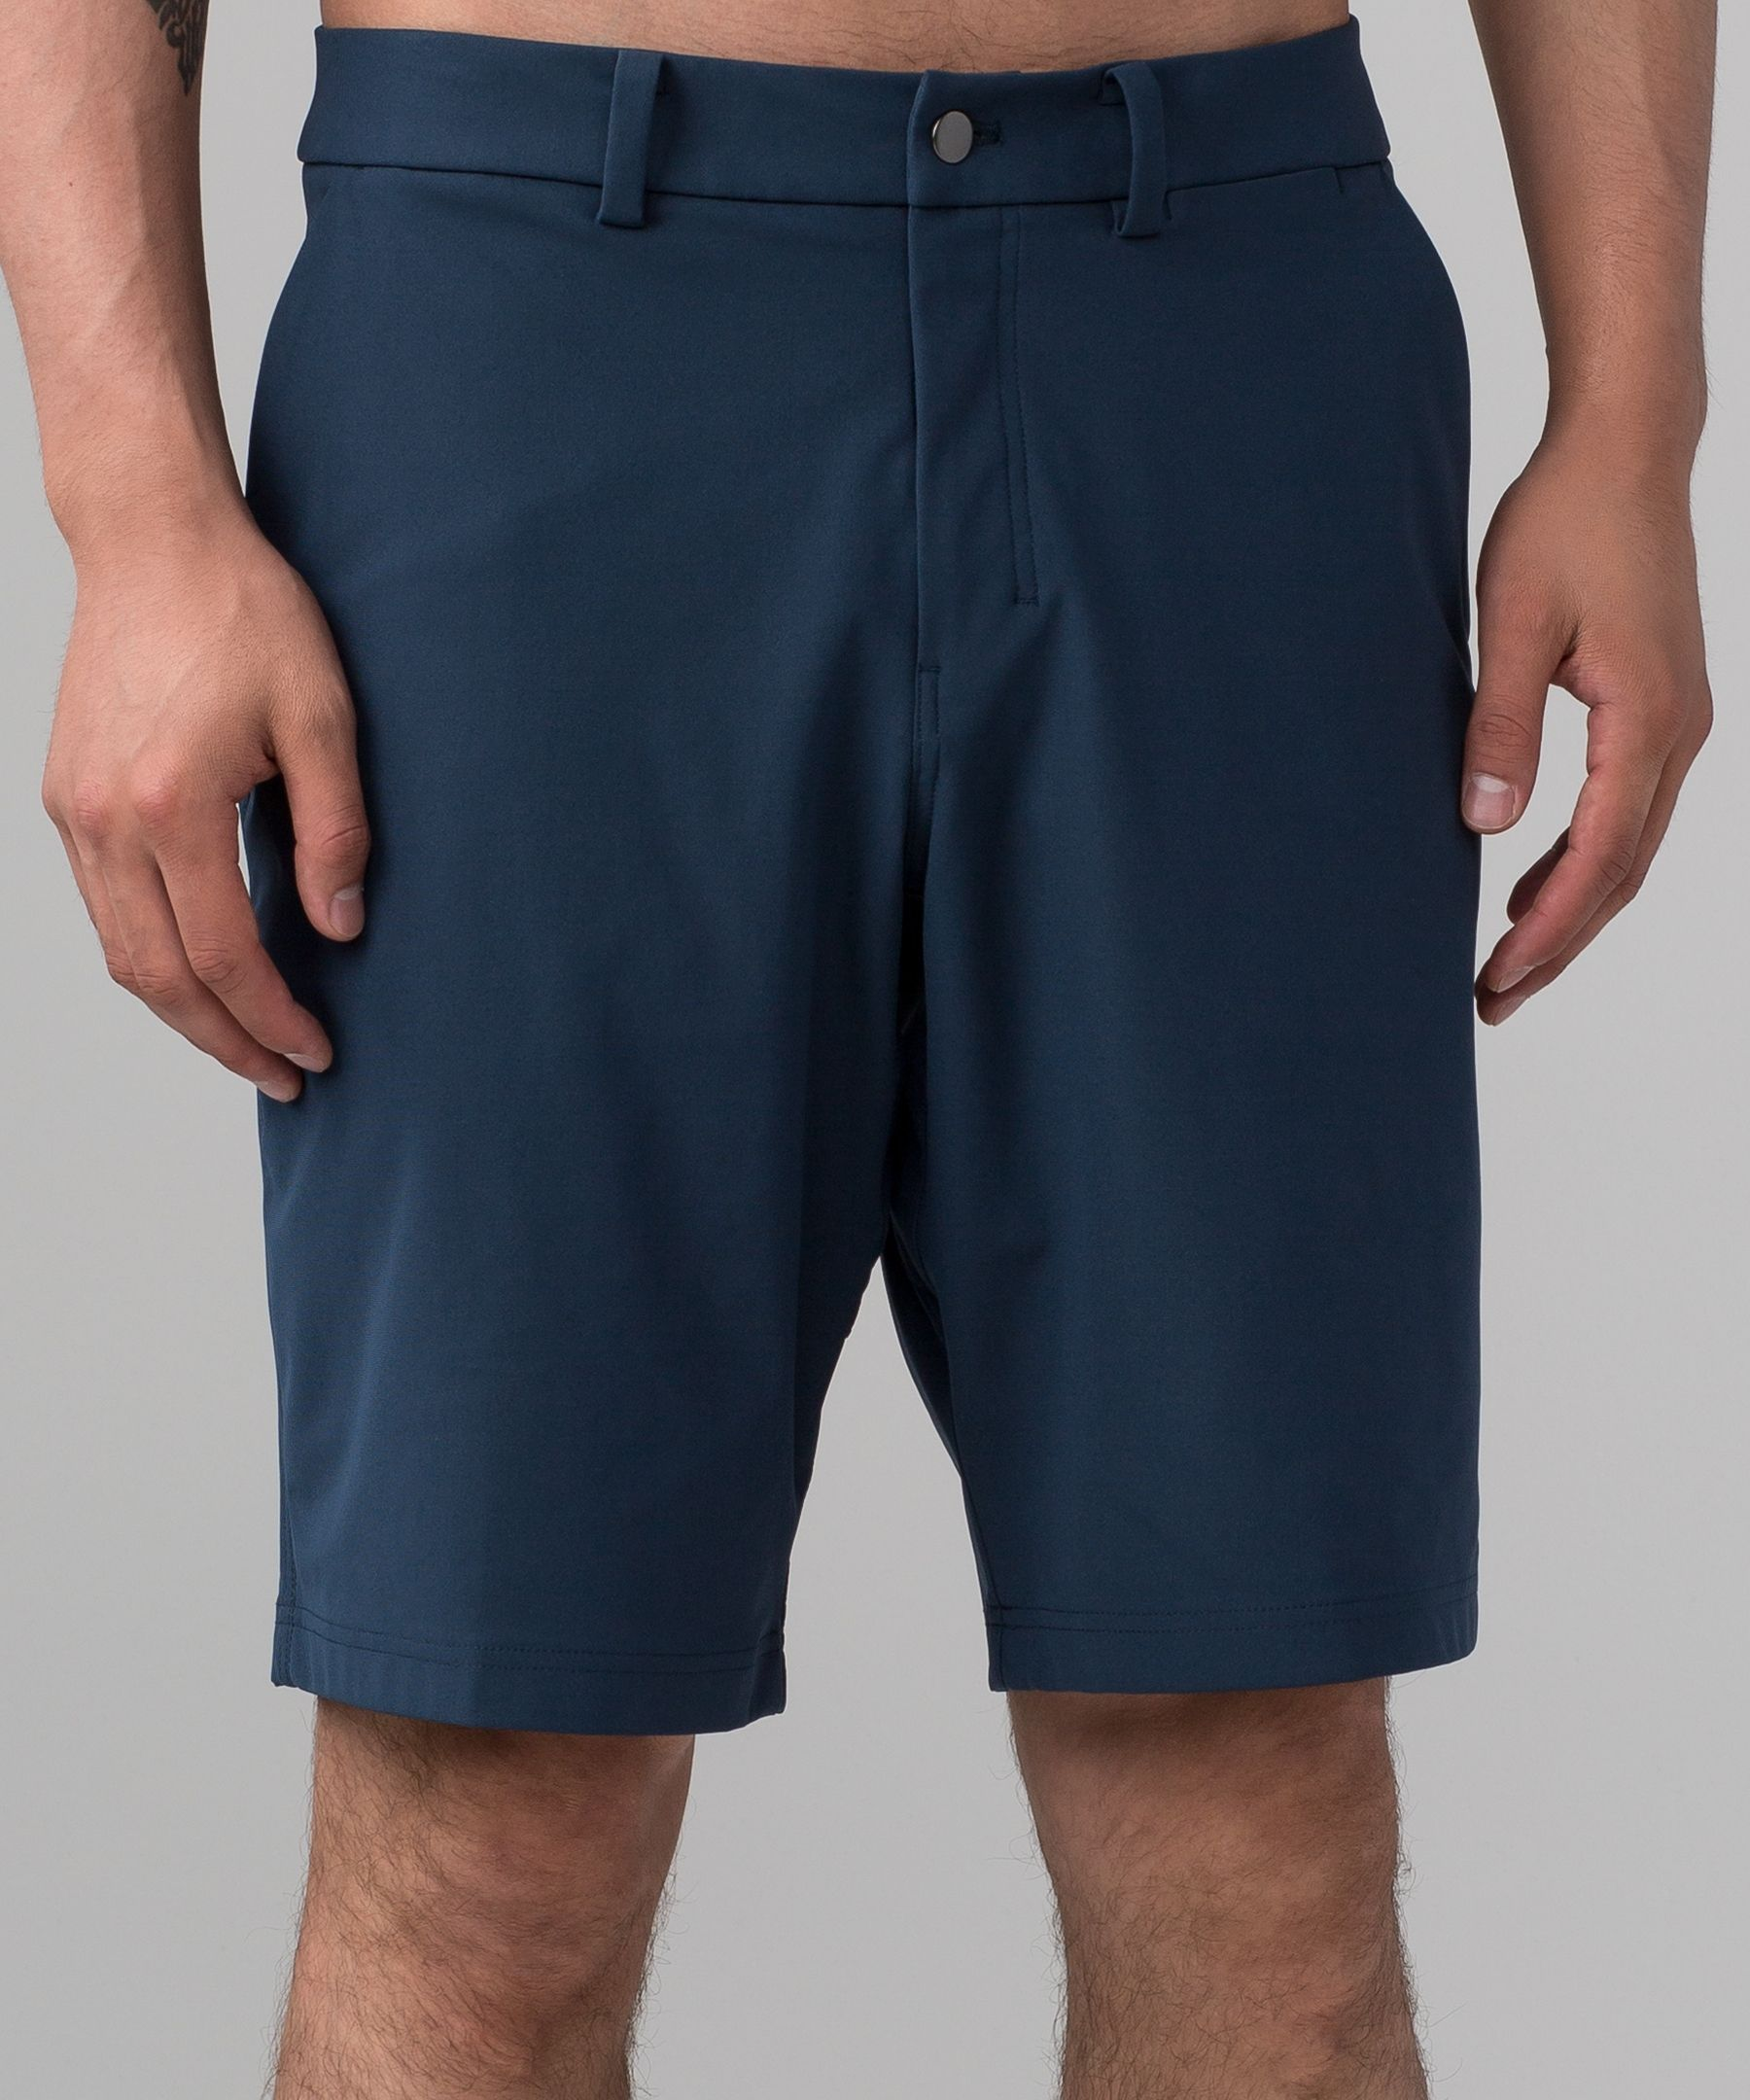 Pin by angela tessau on family pictures mens shorts